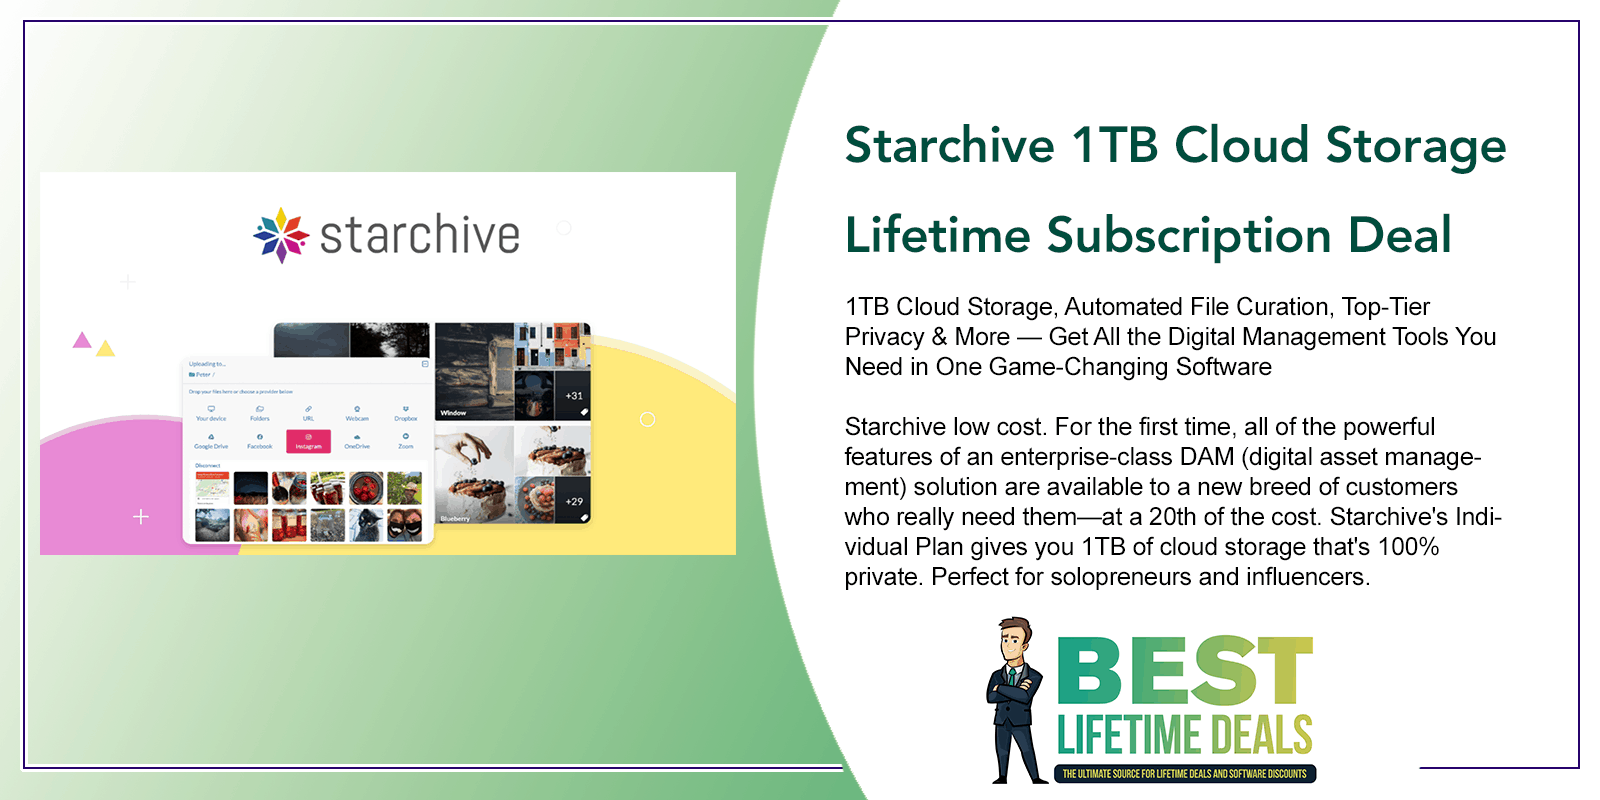 Starchive 1TB Cloud Storage Featured Image